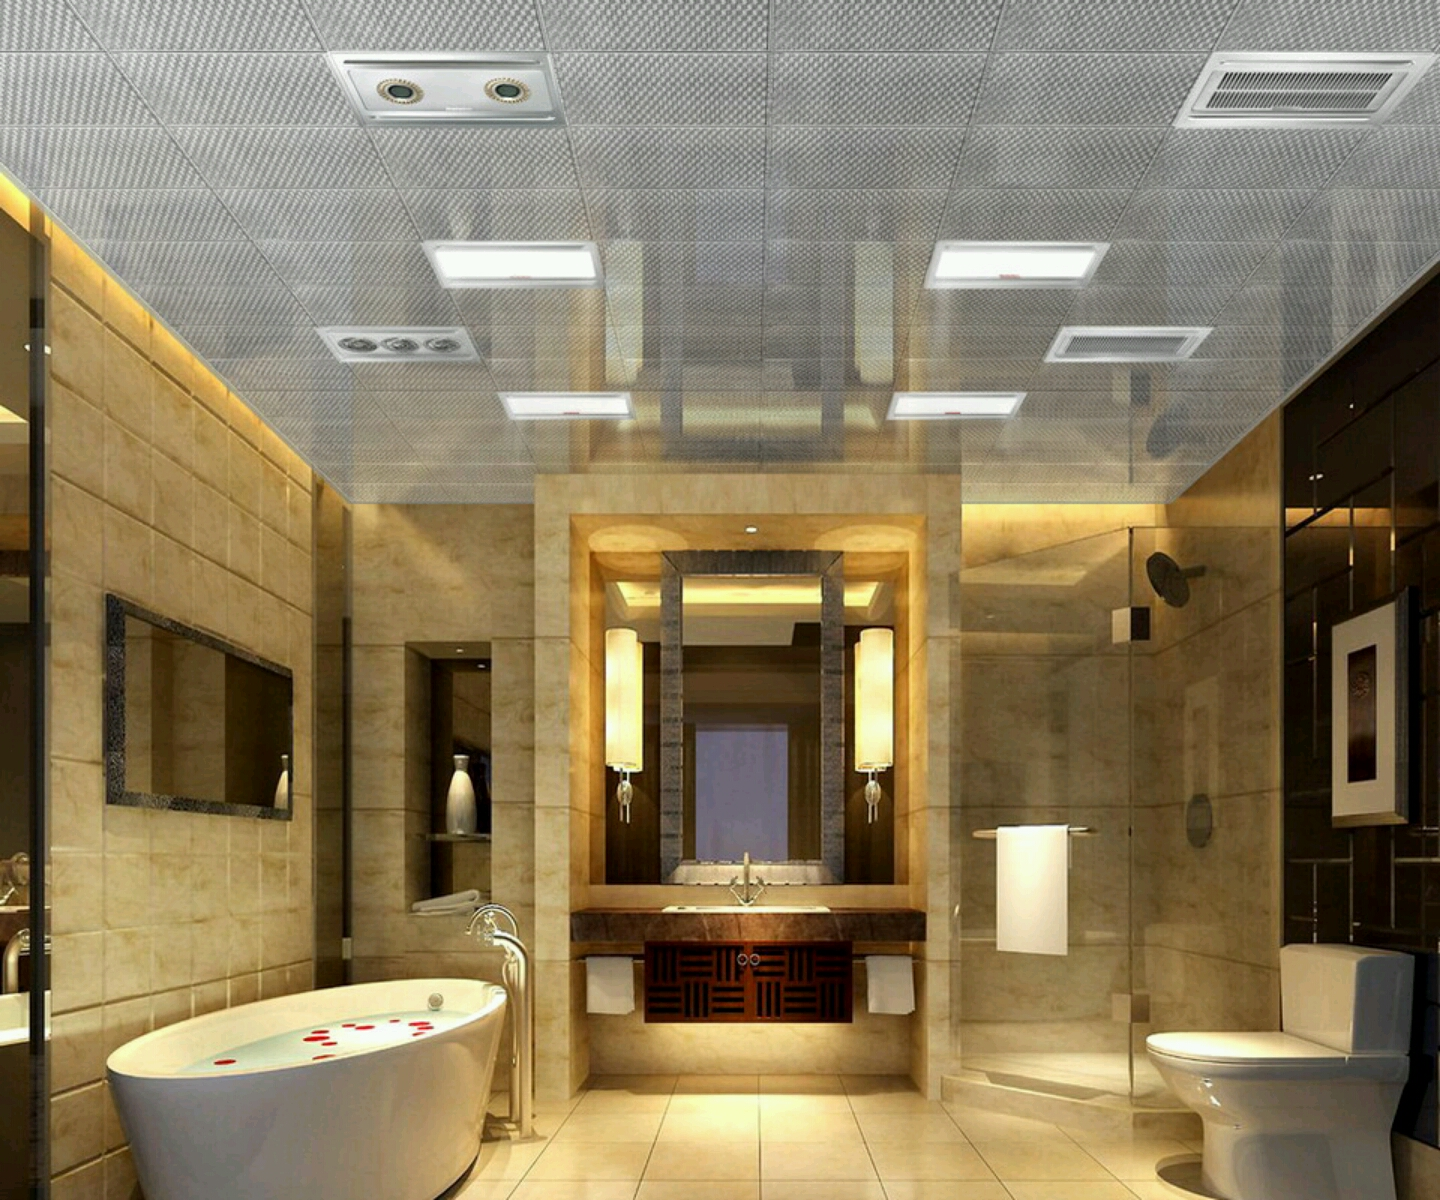 New home designs latest luxury bathrooms designs ideas for Best new bathroom designs